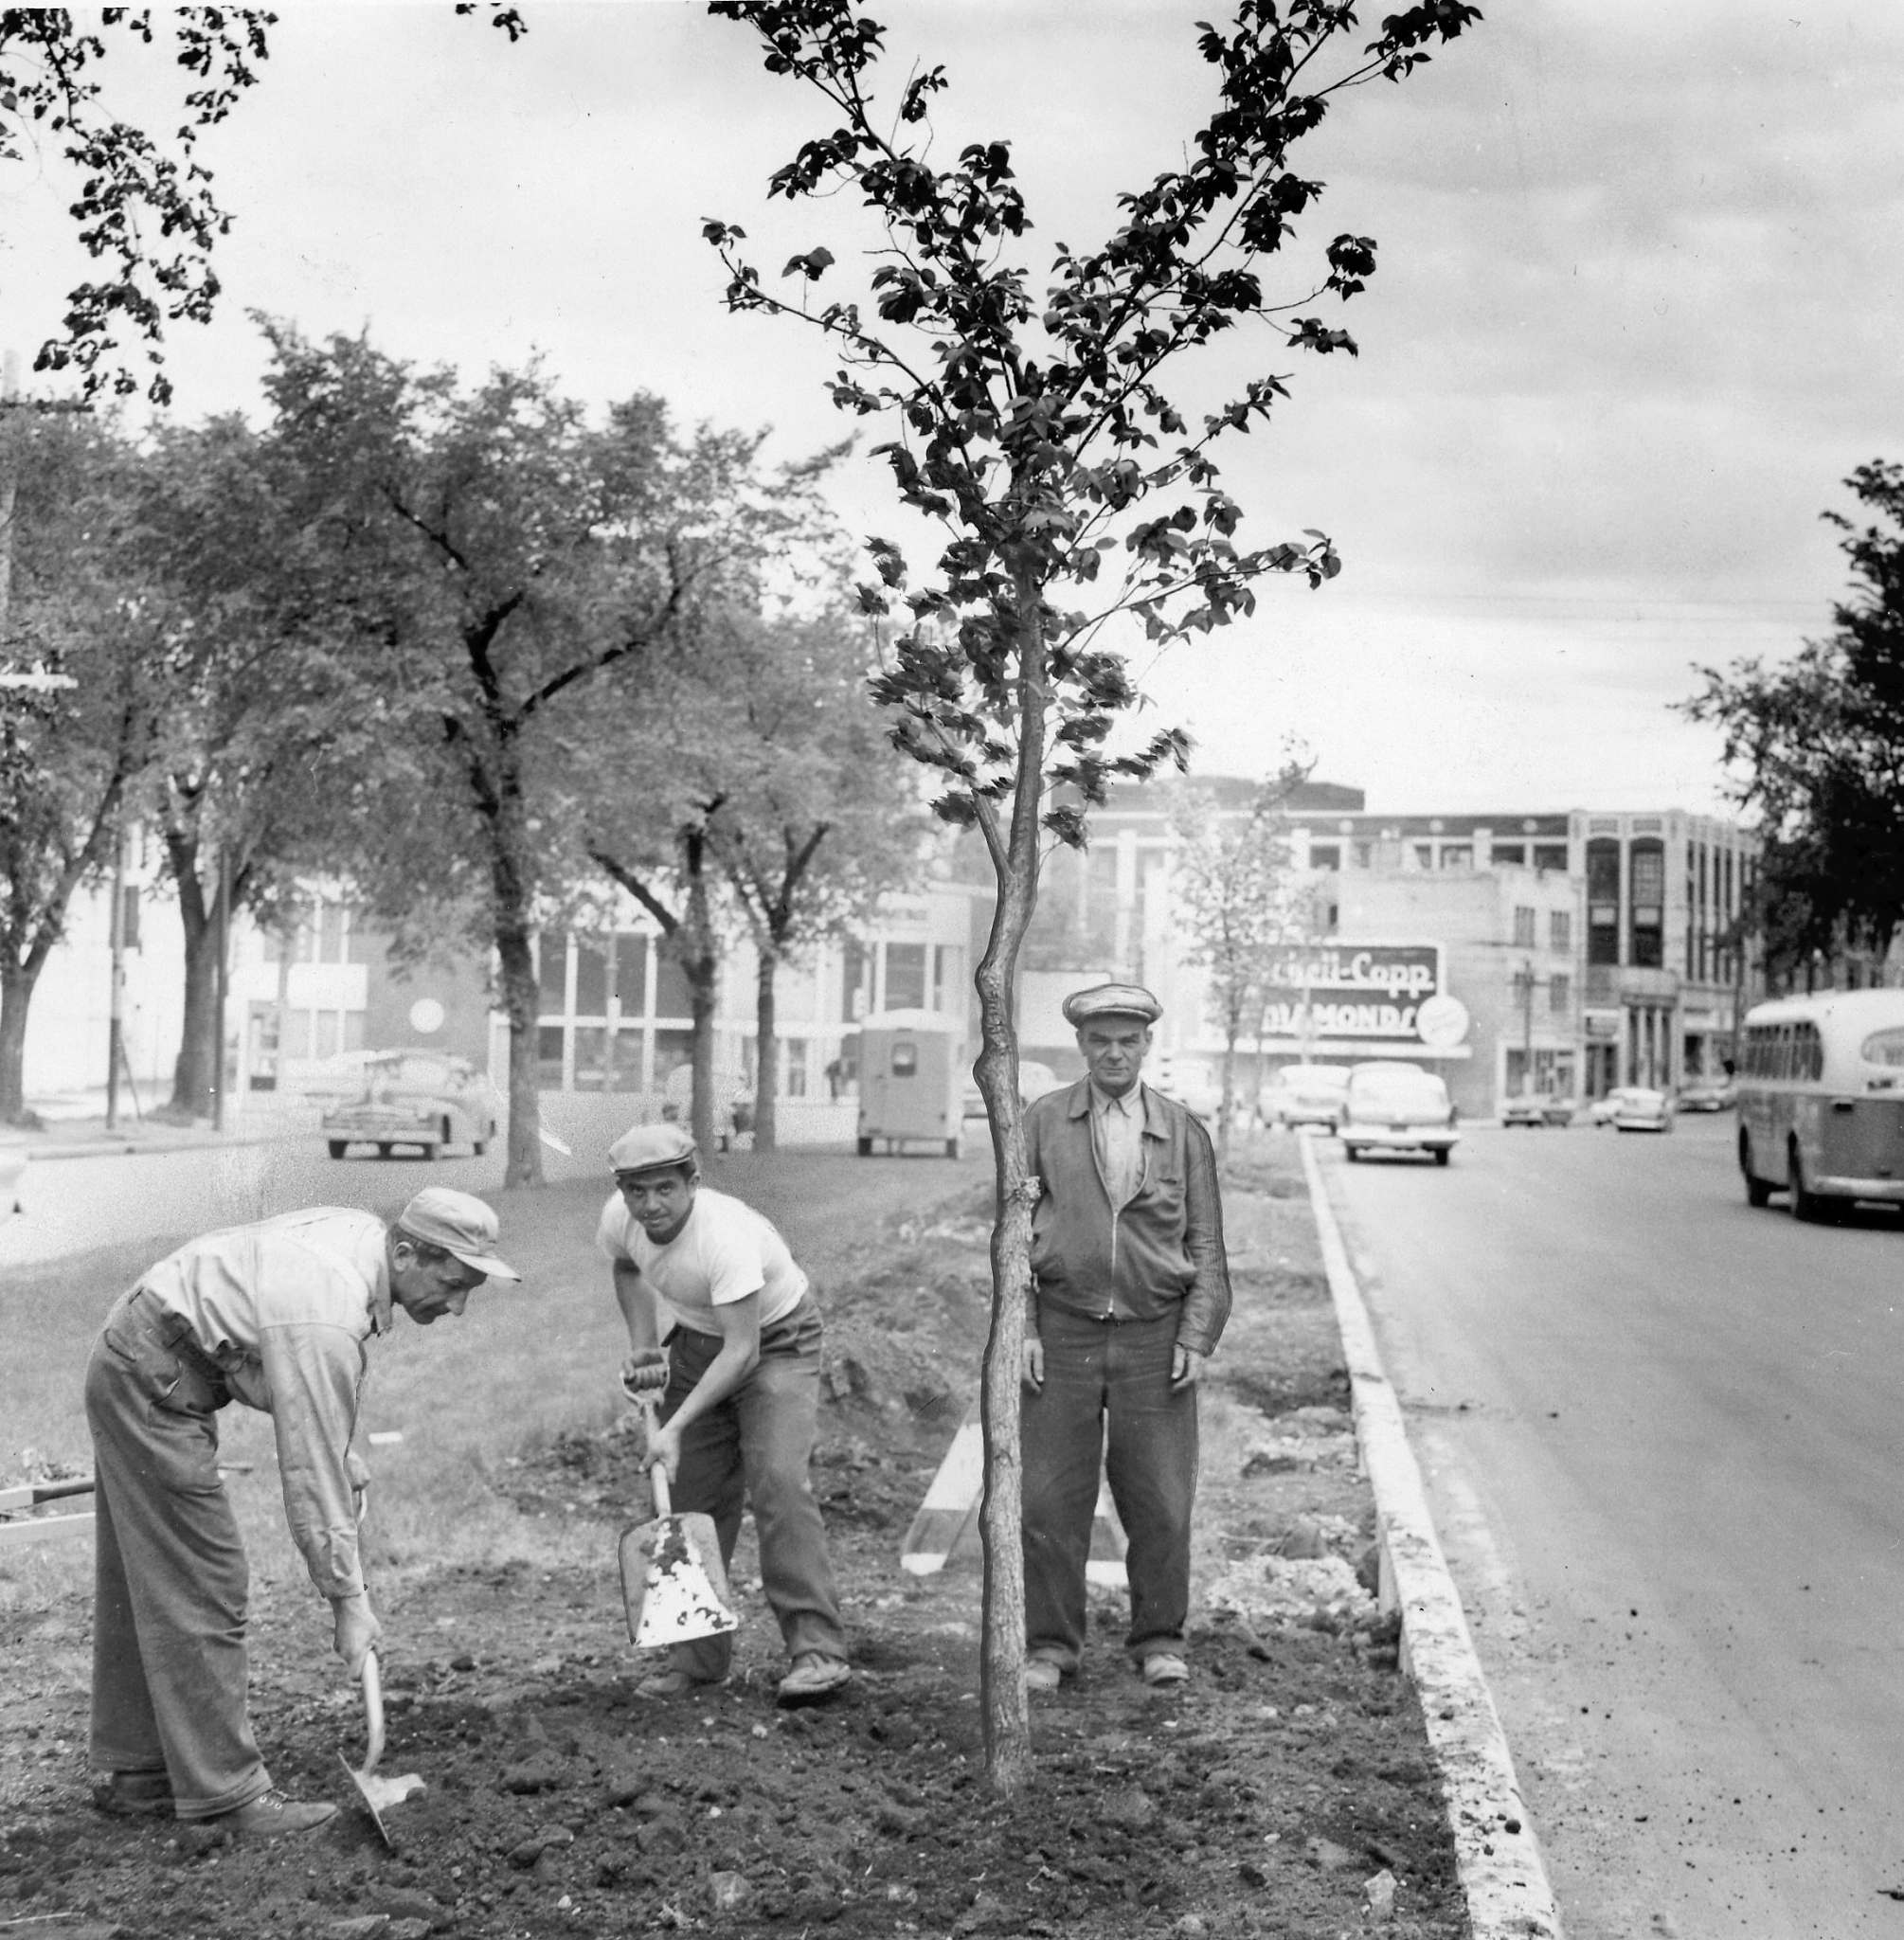 The original caption on June 1, 1960 read: In just 20 years from now the tree shown being planted on Broadway in the block east of Osborne Street may be as big as the one it is replacing. It is one of 12 elms replacing trees cut down last month to make way for pavement widening, setting off a sharp controversy at city hall.</p>